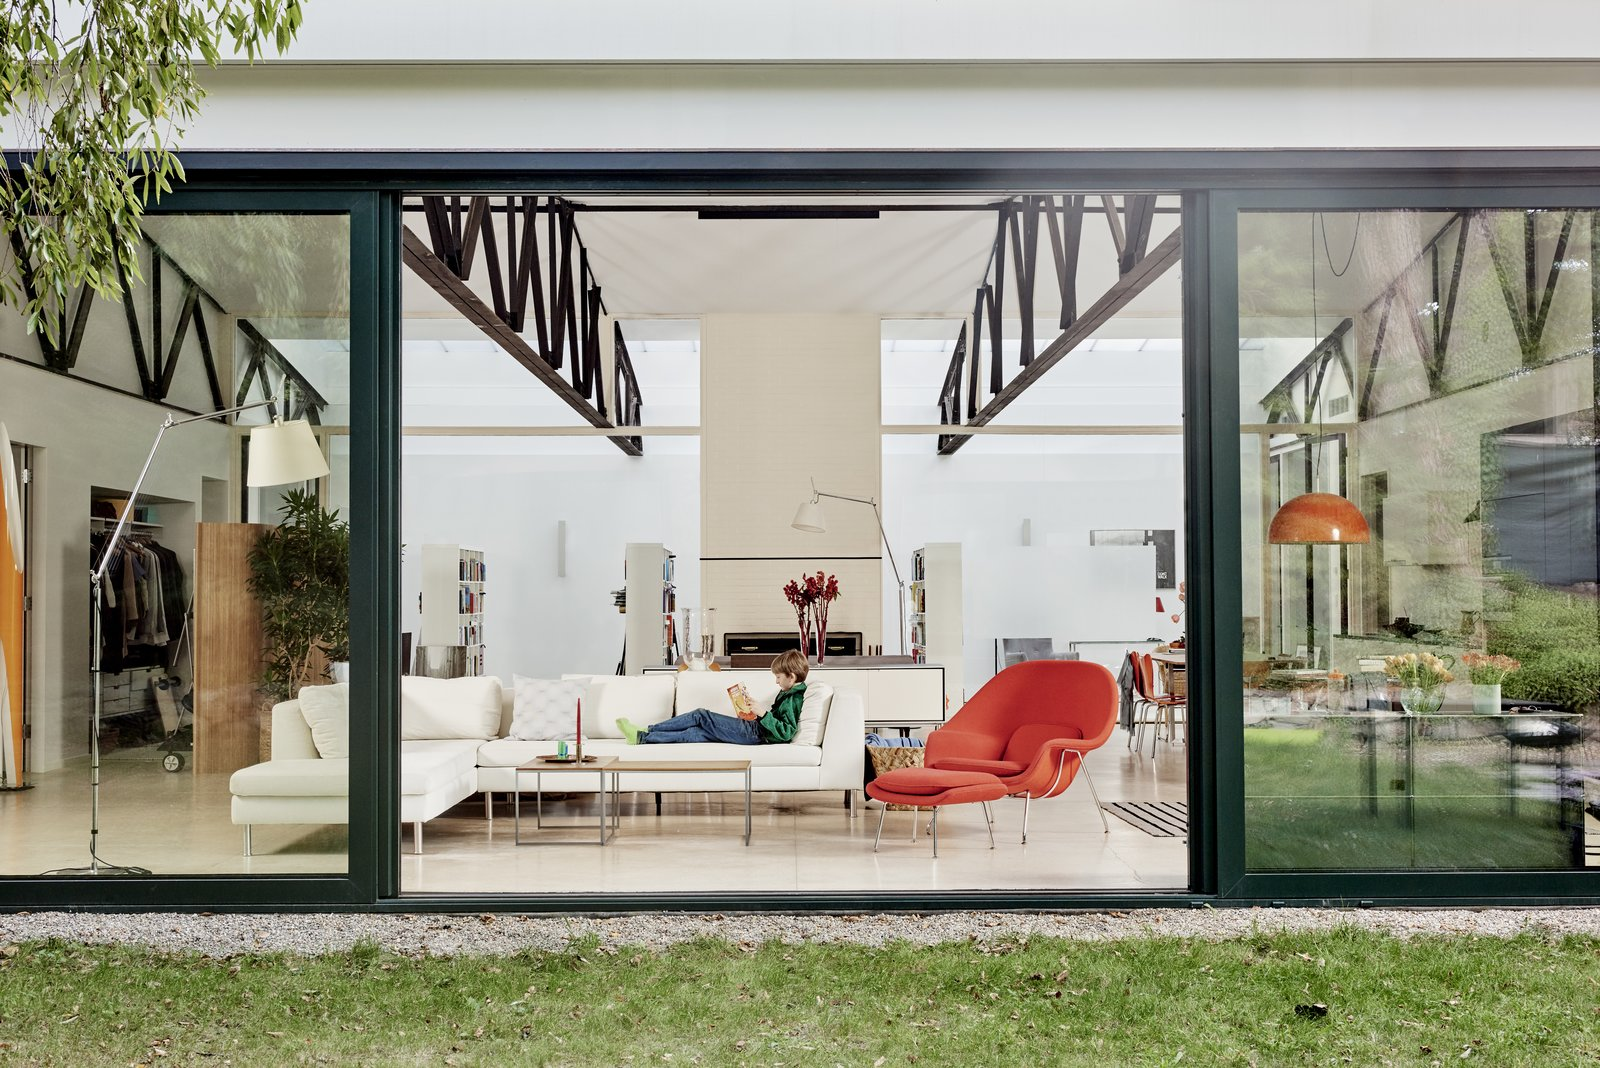 Top 4 Homes of the Week With Floor-to-Ceiling Windows - Dwell